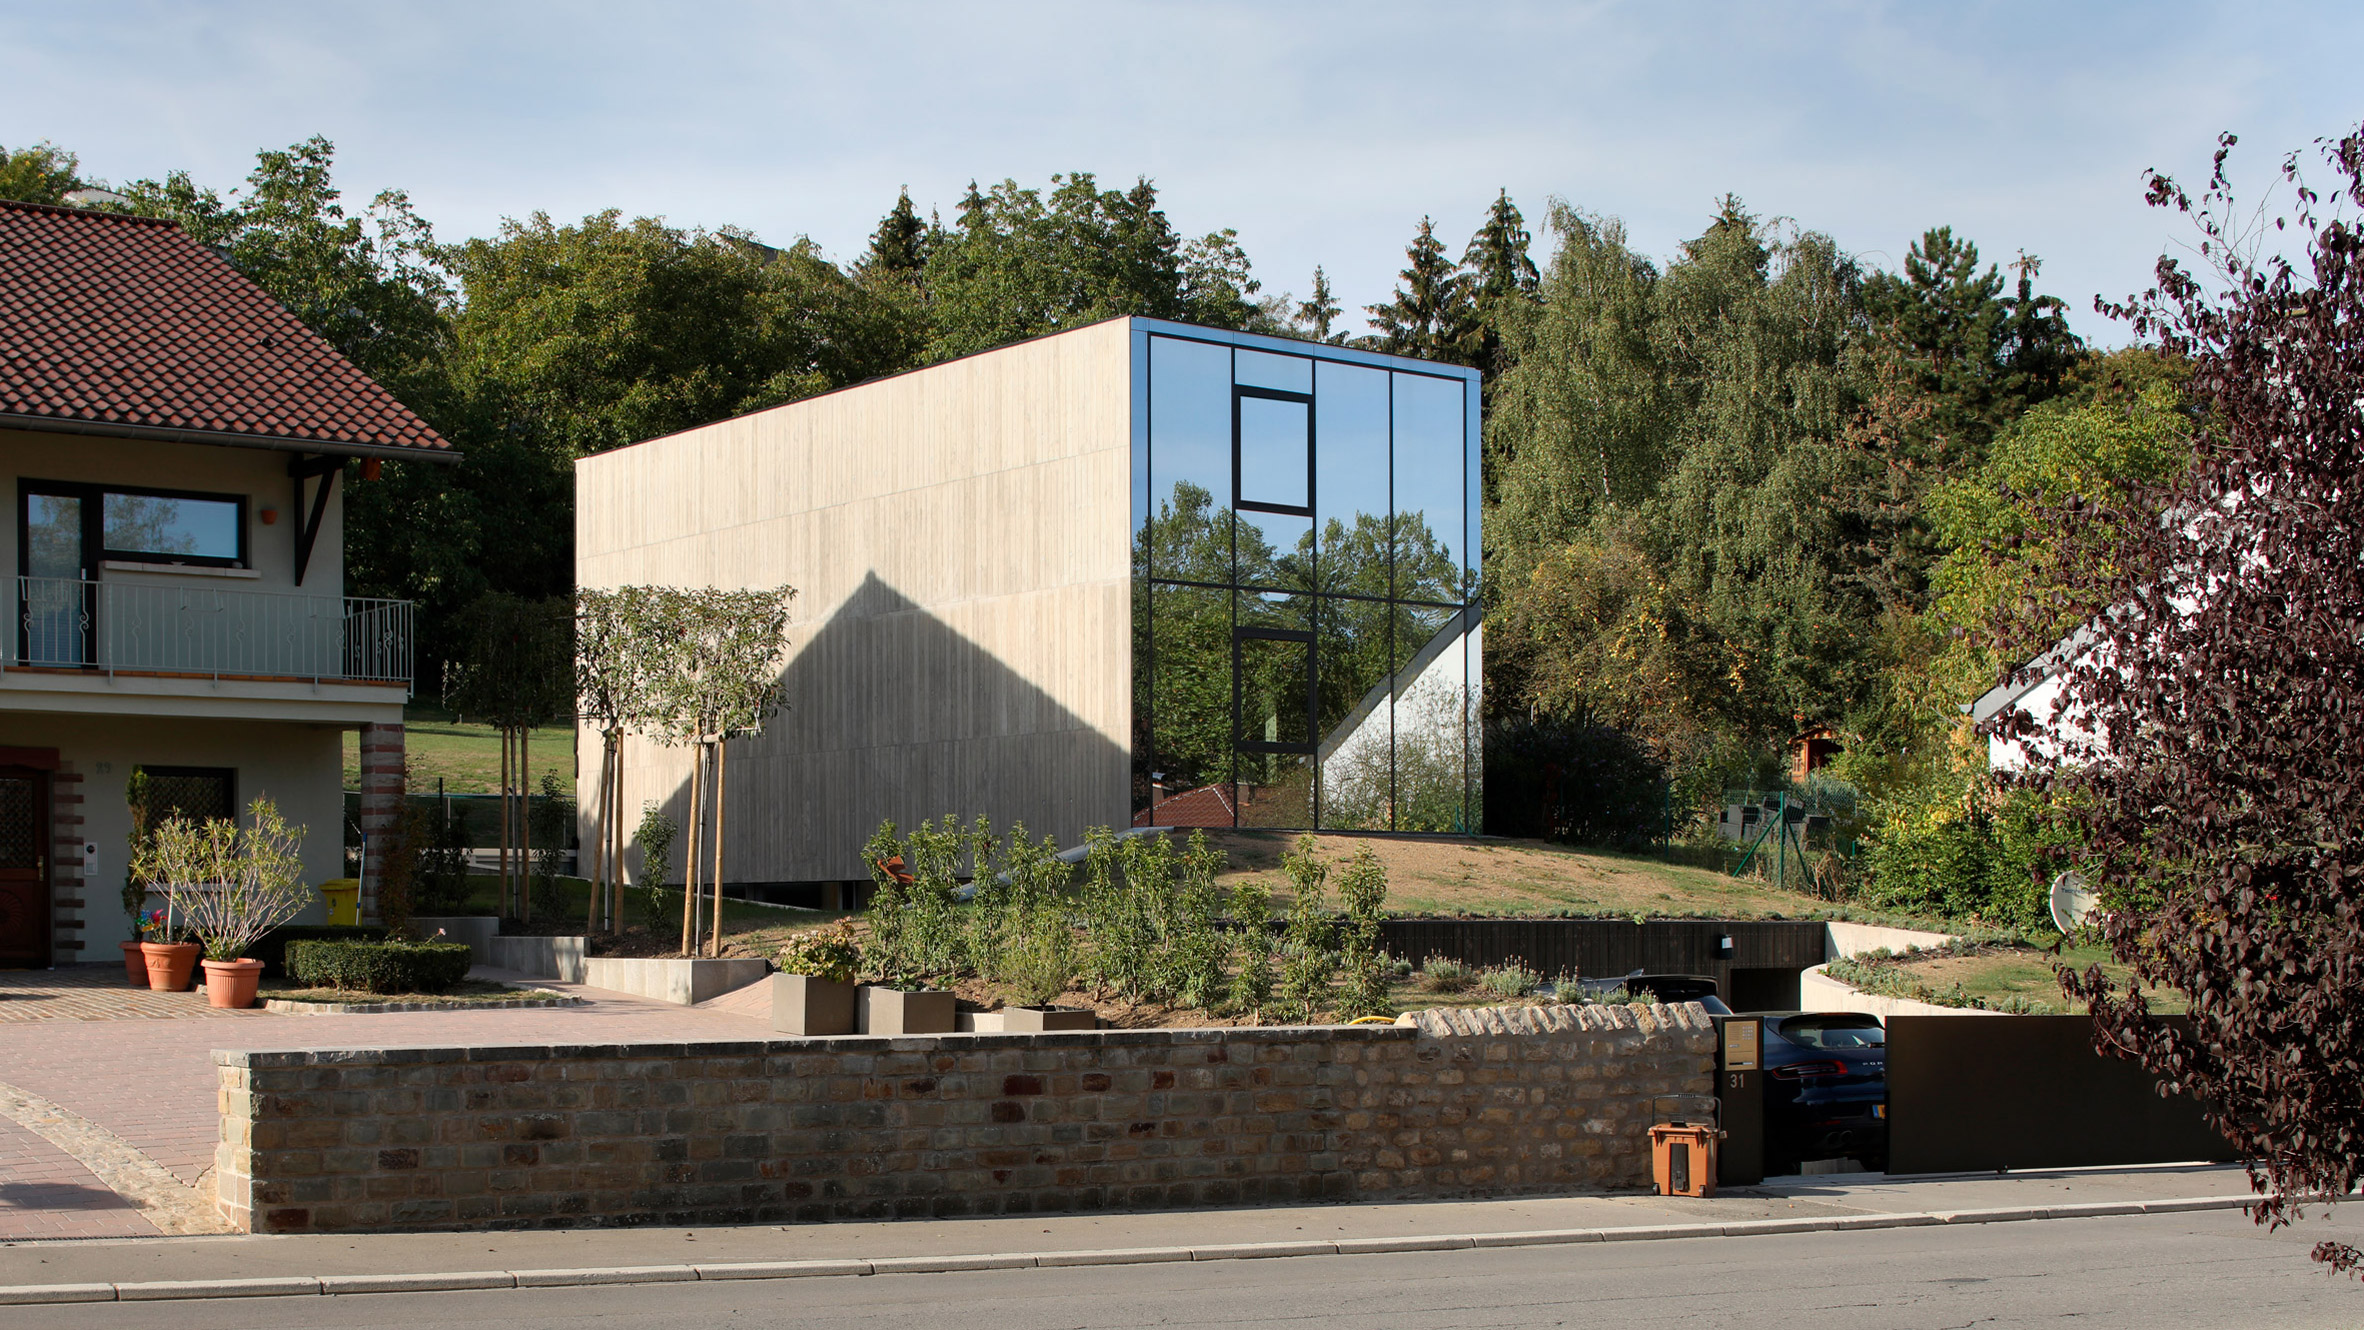 The exterior of a house which has concrete walls and a front facade which consist entirely of glass. The house is surrounded by trees.